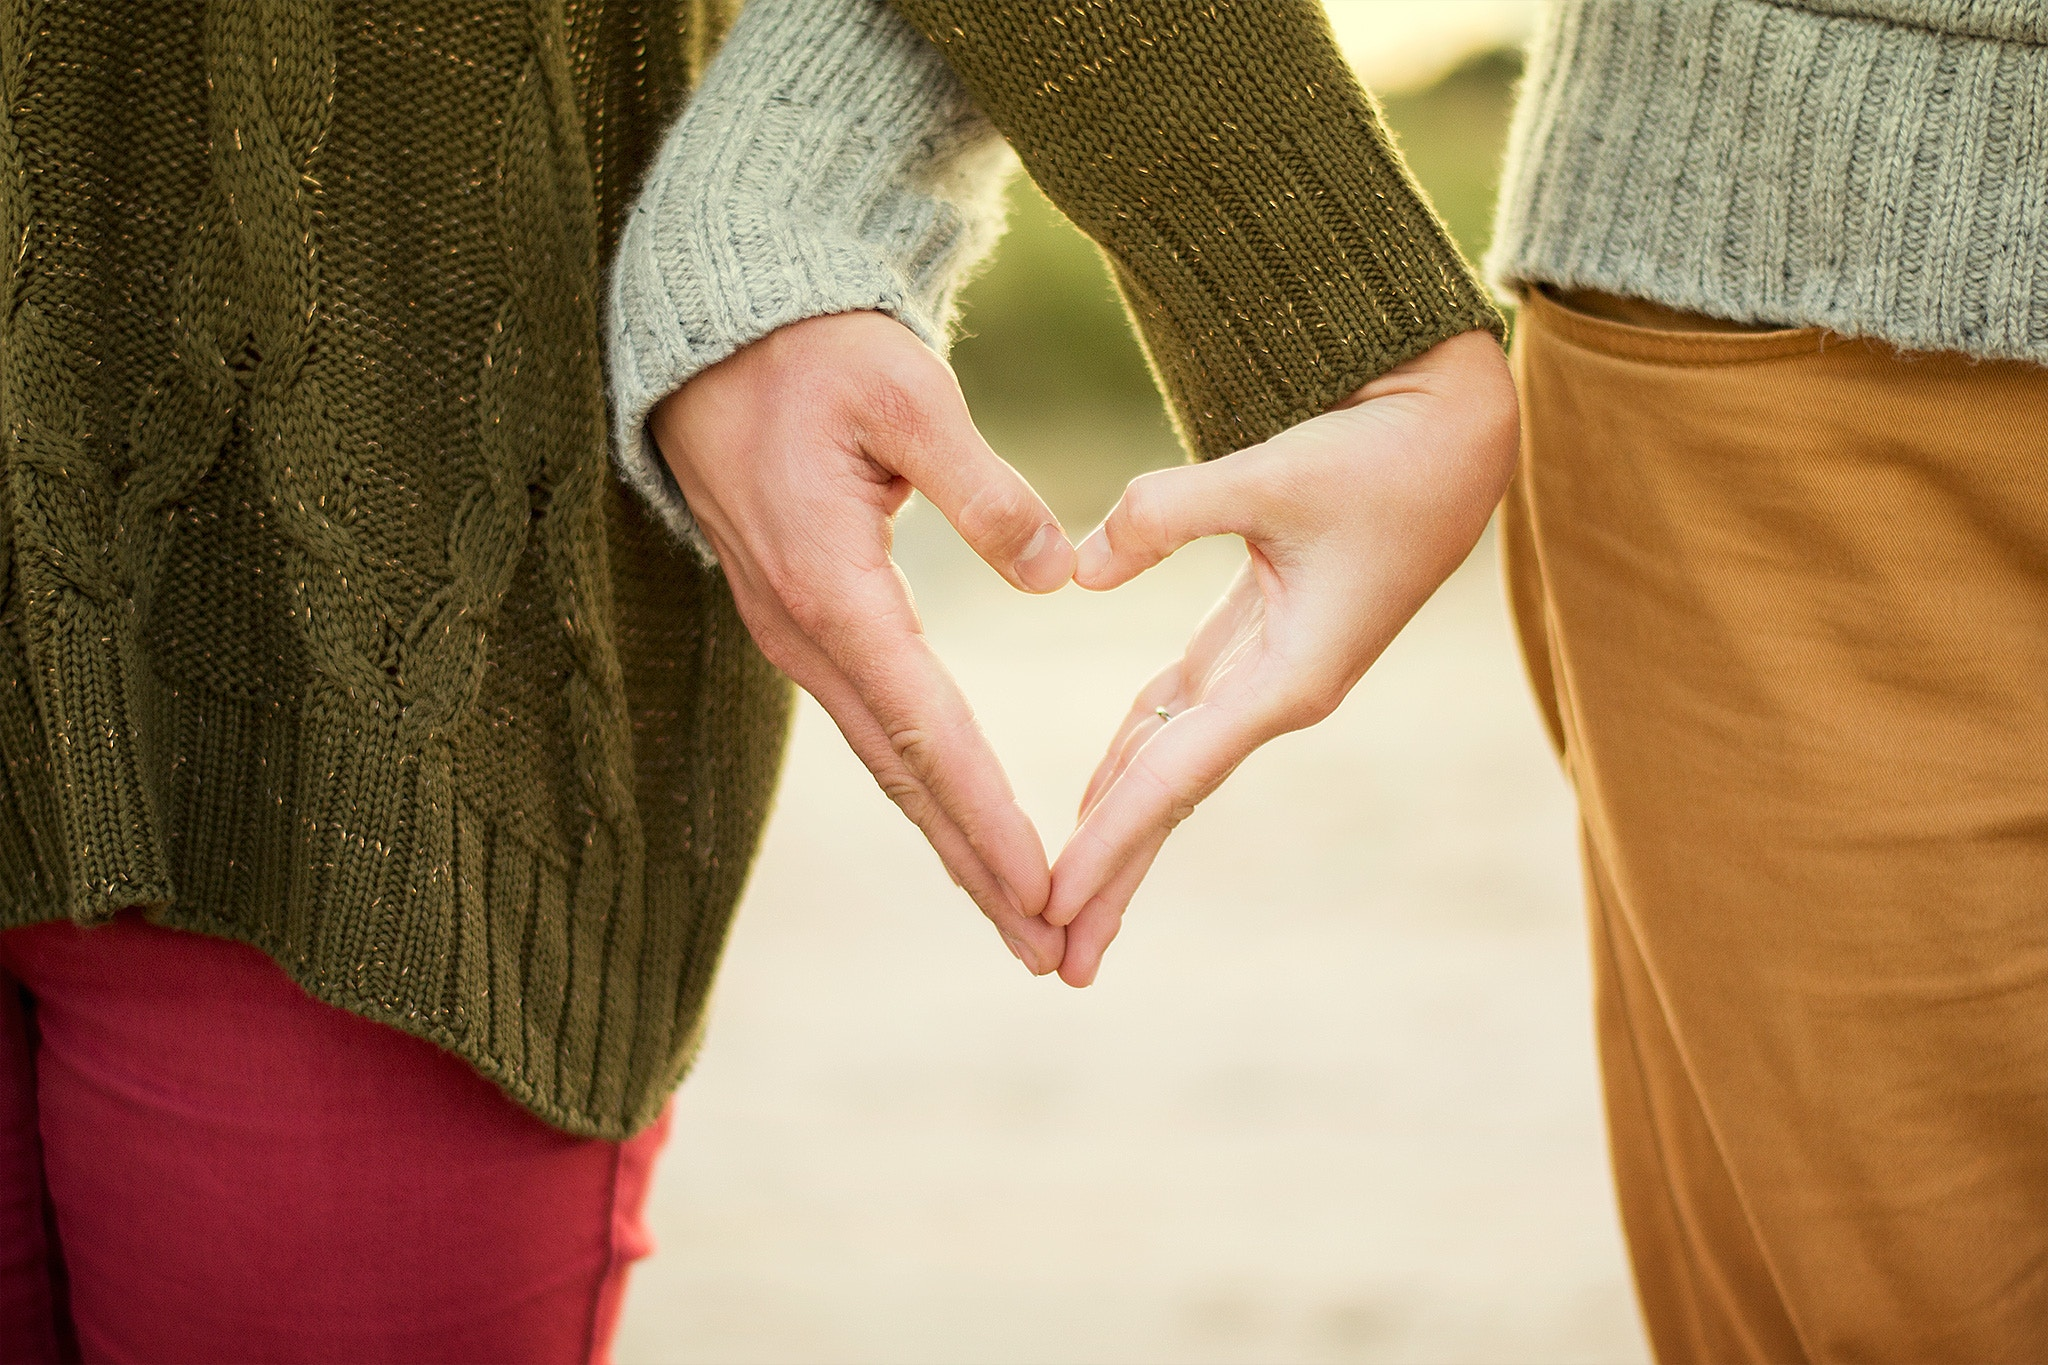 hold me tight - Find your way back to love and intimacy